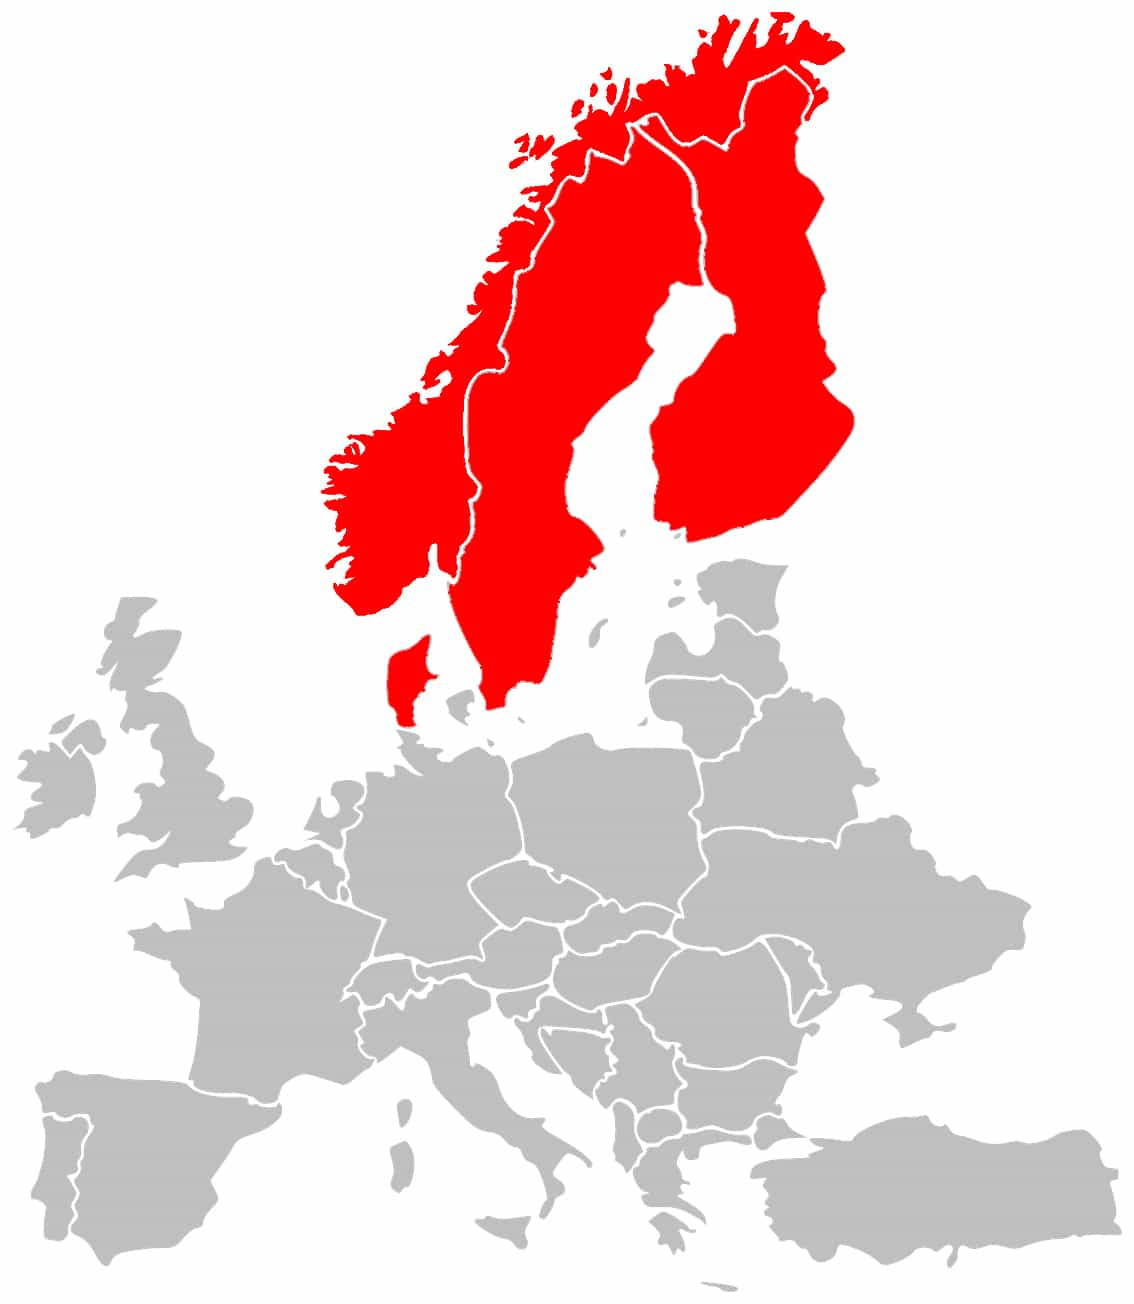 Cartina Scandinavia